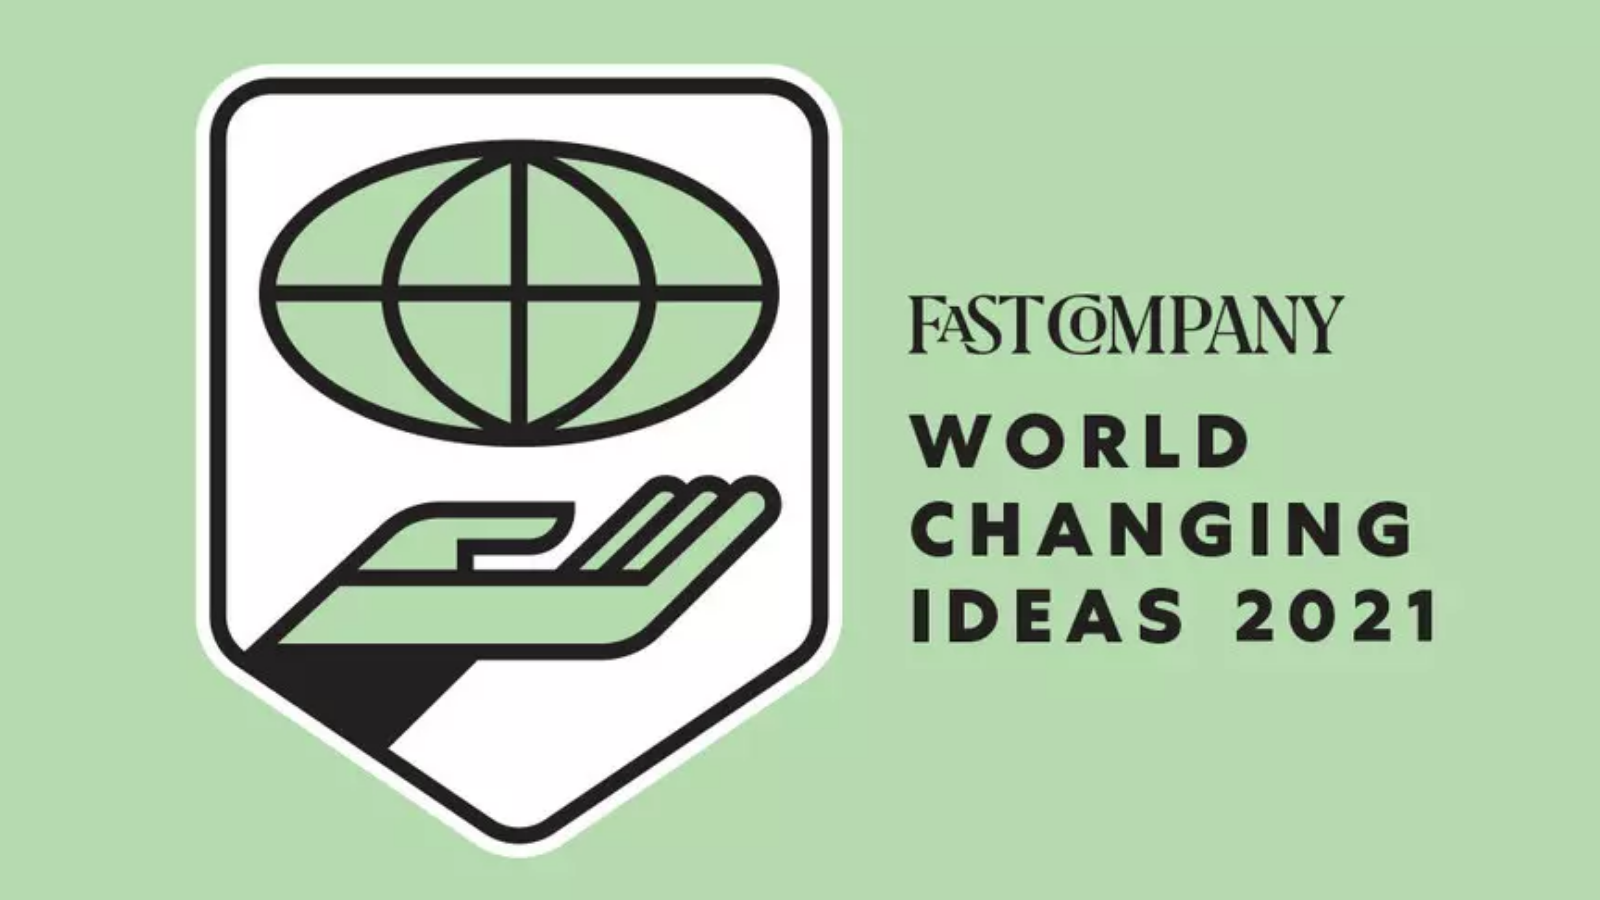 Fast Company's World Changing Ideas Awards 2021